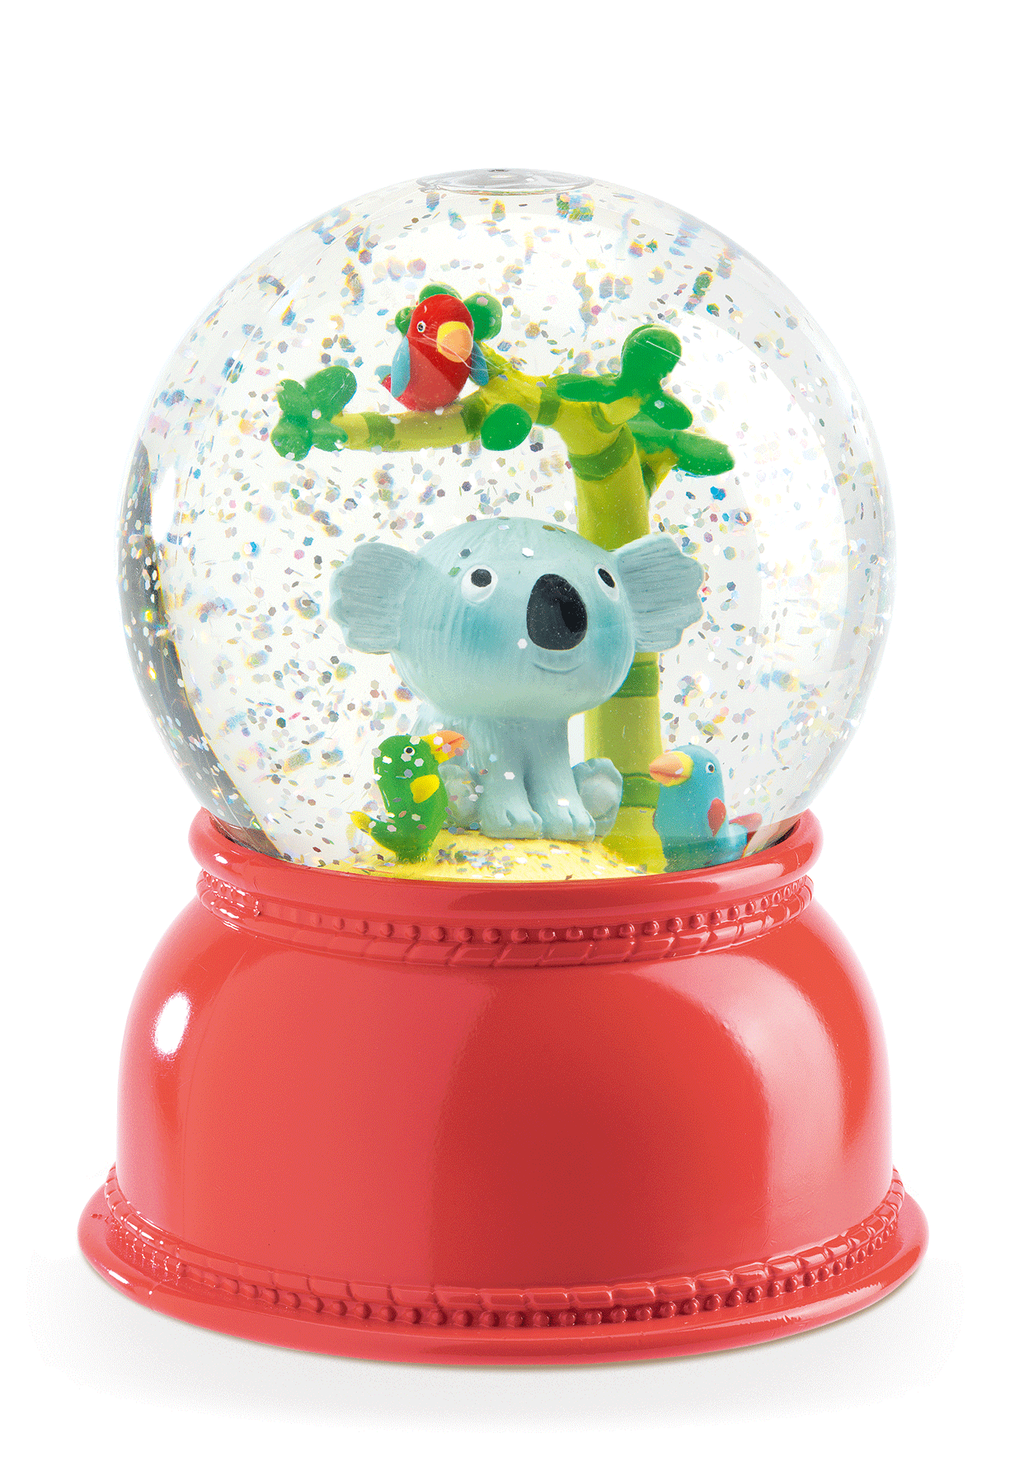 Djeco Night Light - Kali The Koala